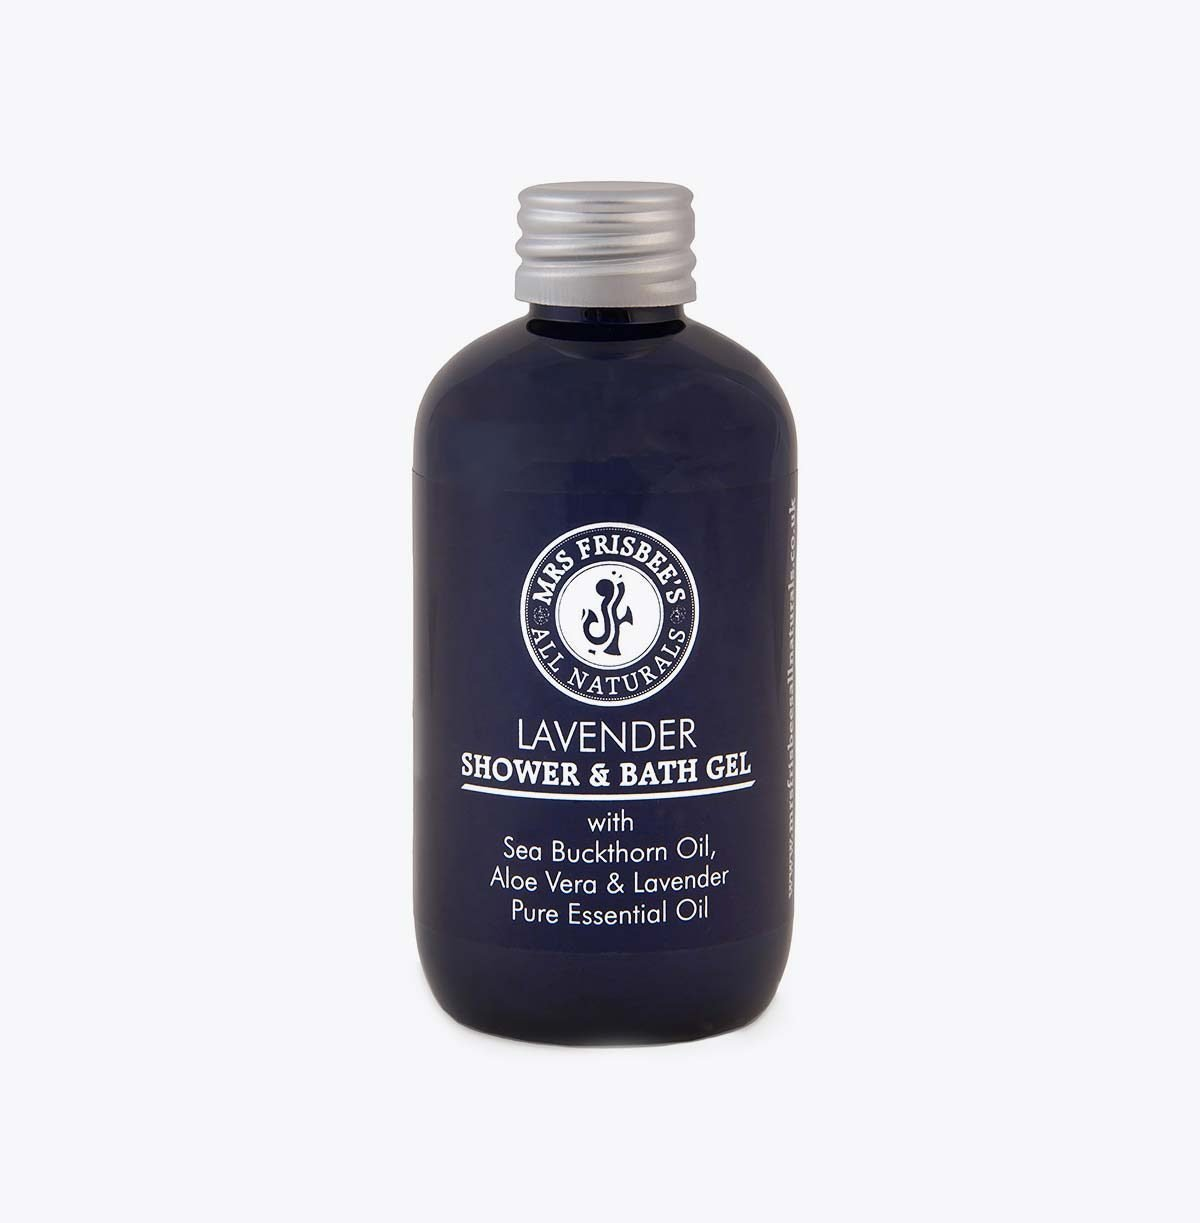 Lavender Shower Gel 100ml, with sea buckthorn oil, aloe vera and lavender pure essential oil.